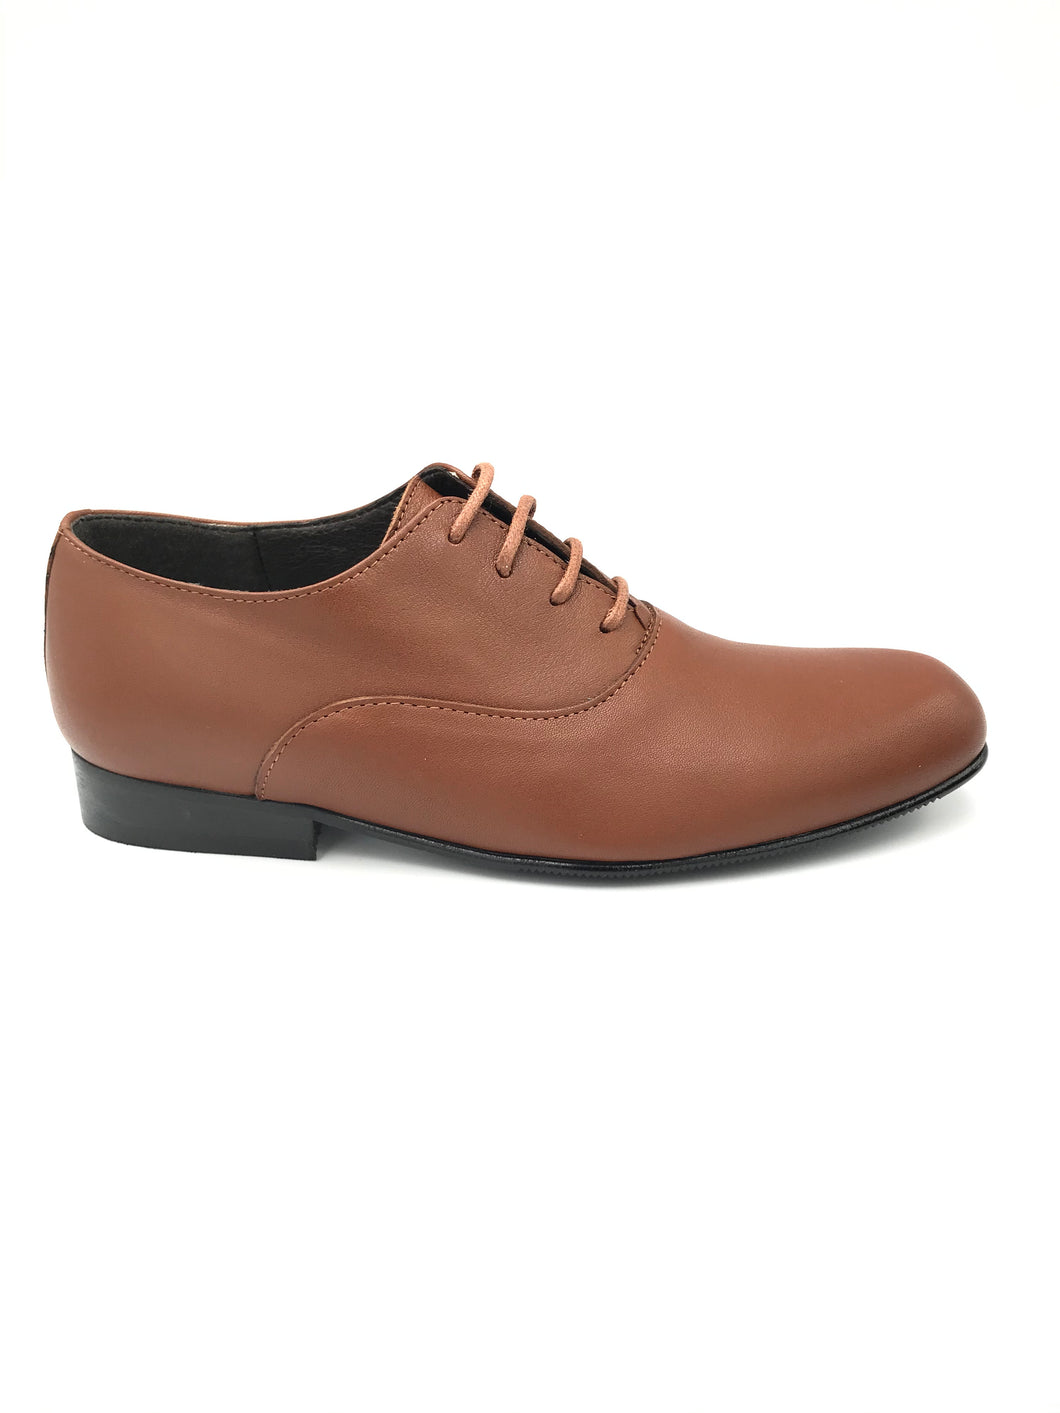 Atlanta Mocassin Brown Leather Lace Up Dress Shoe 14331